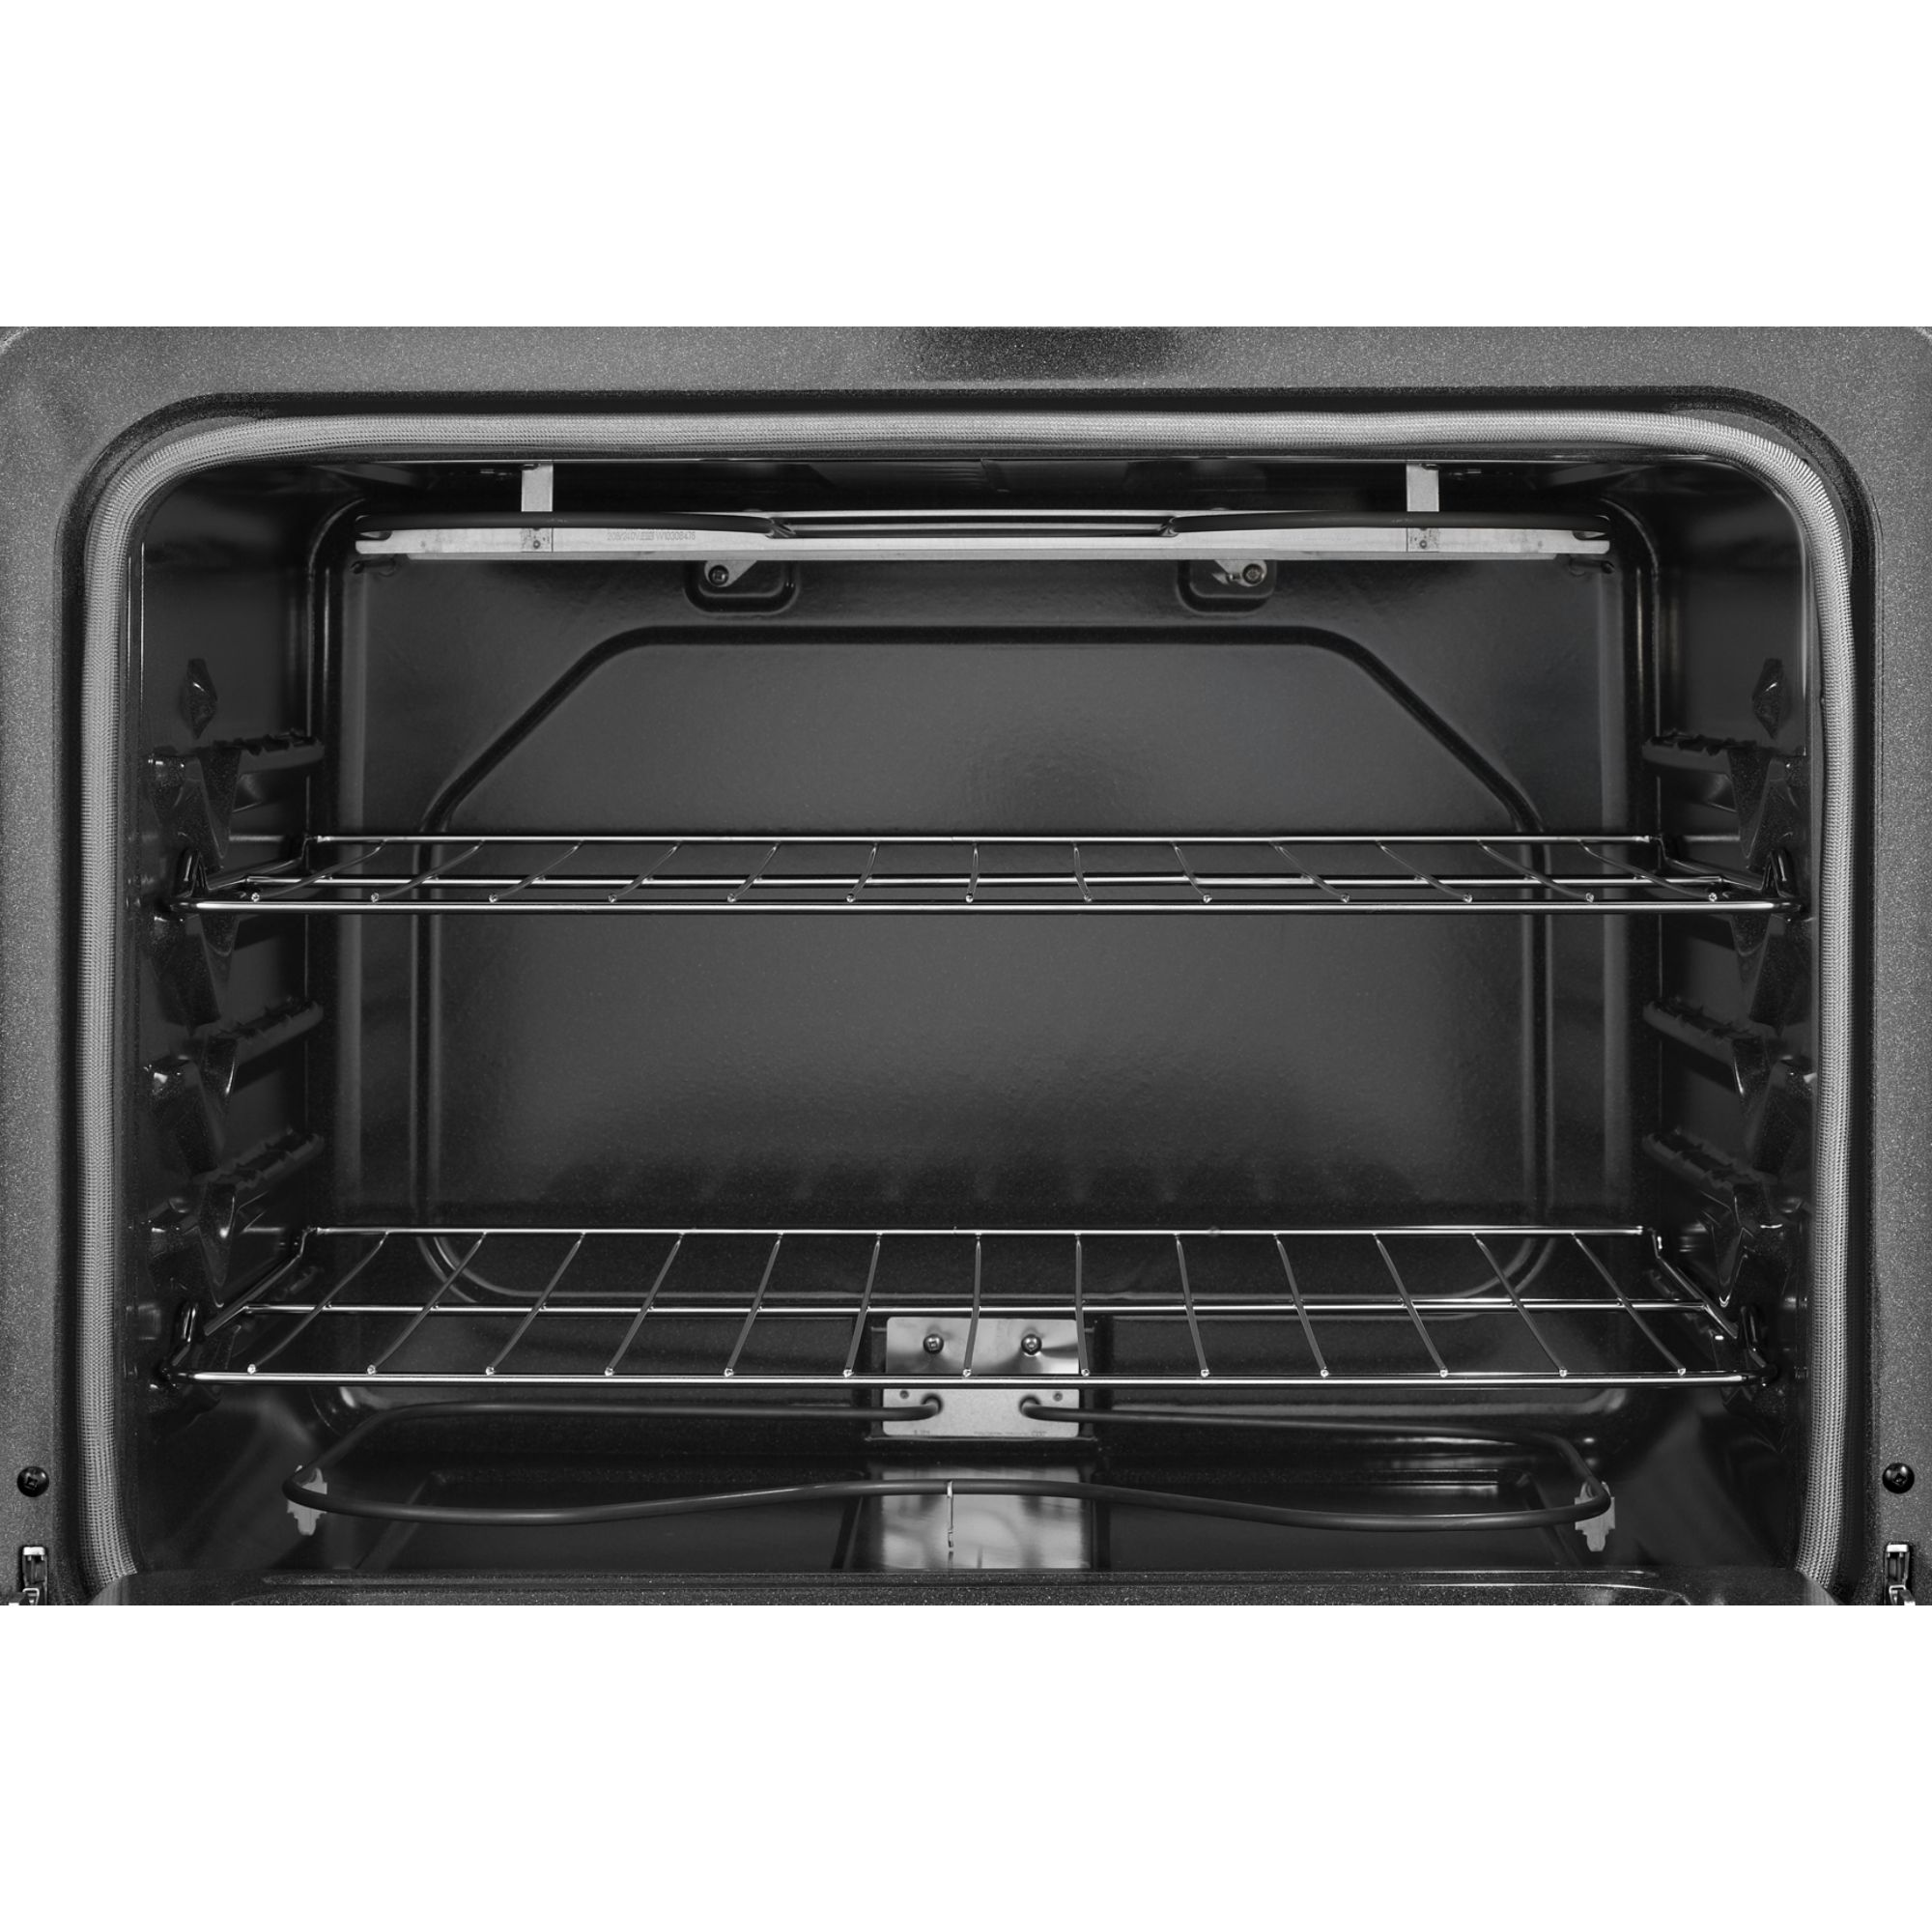 Whirlpool 4.8 cu. ft. Electric Range w/ Custom Broil - Black